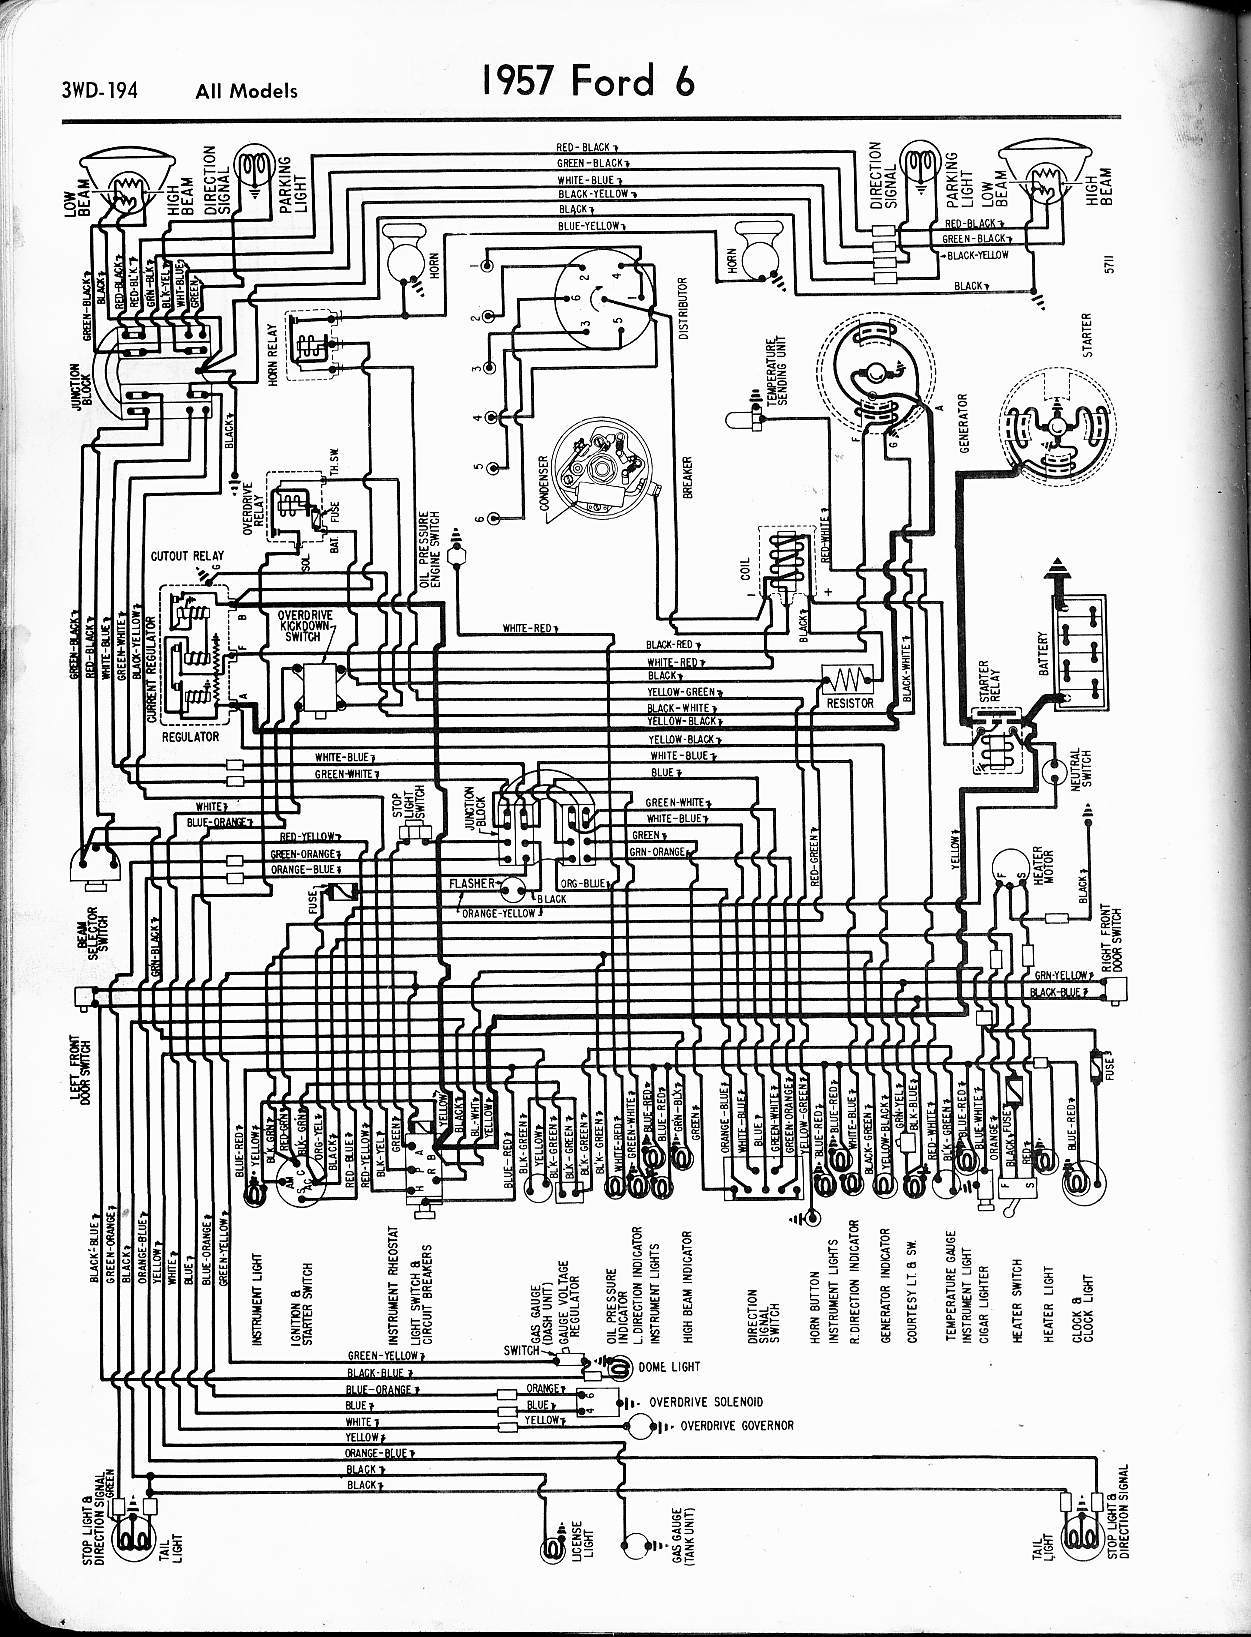 wiring diagram 1947 ford truck wiring diagram 1947 ford truck 1957 ford truck wiring diagram ford truck enthusiasts forums